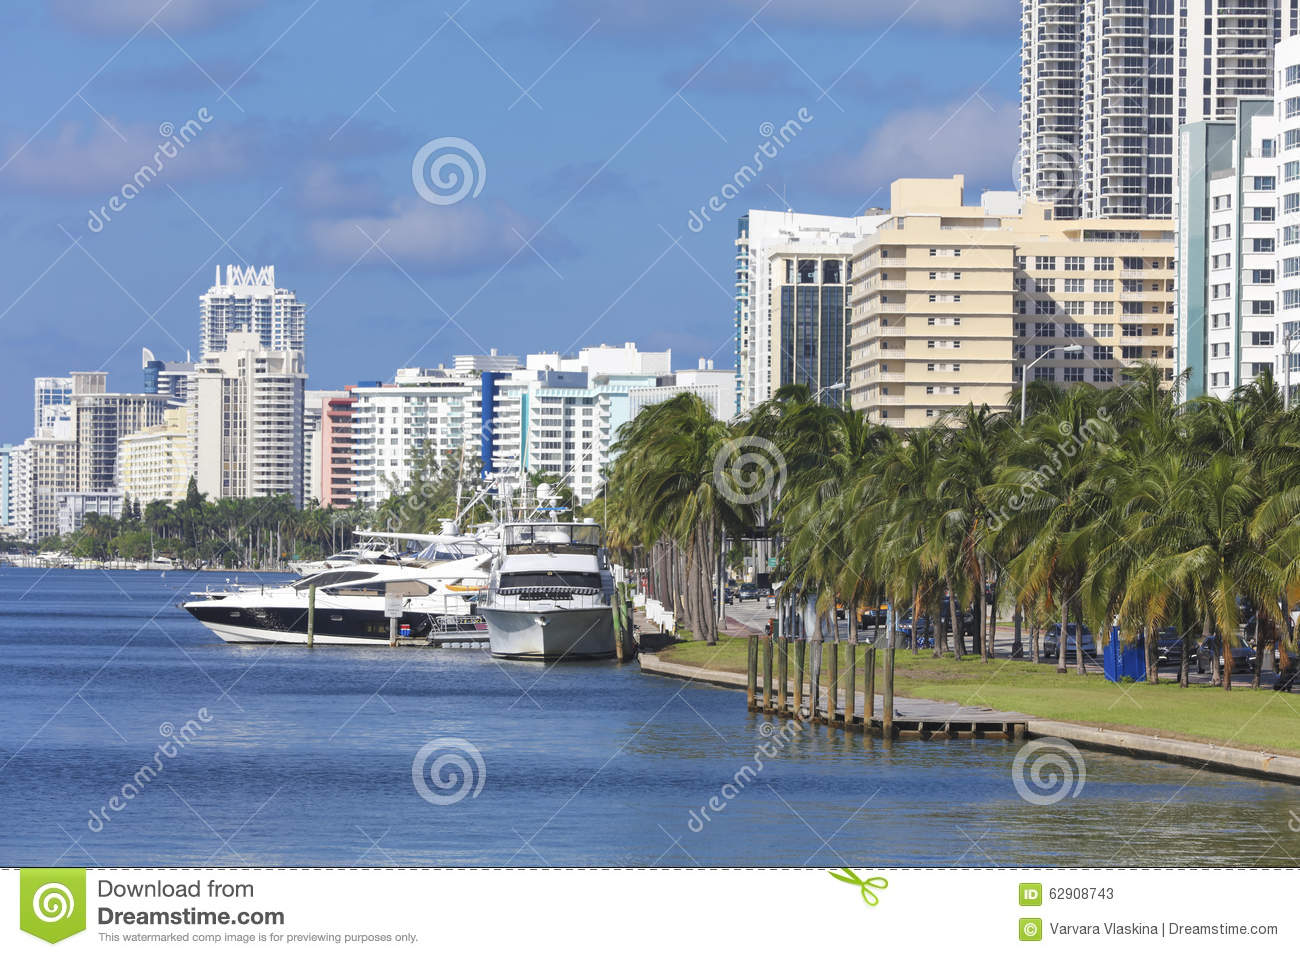 Wharf with yachts at the residentials of Miami Beach, Florida